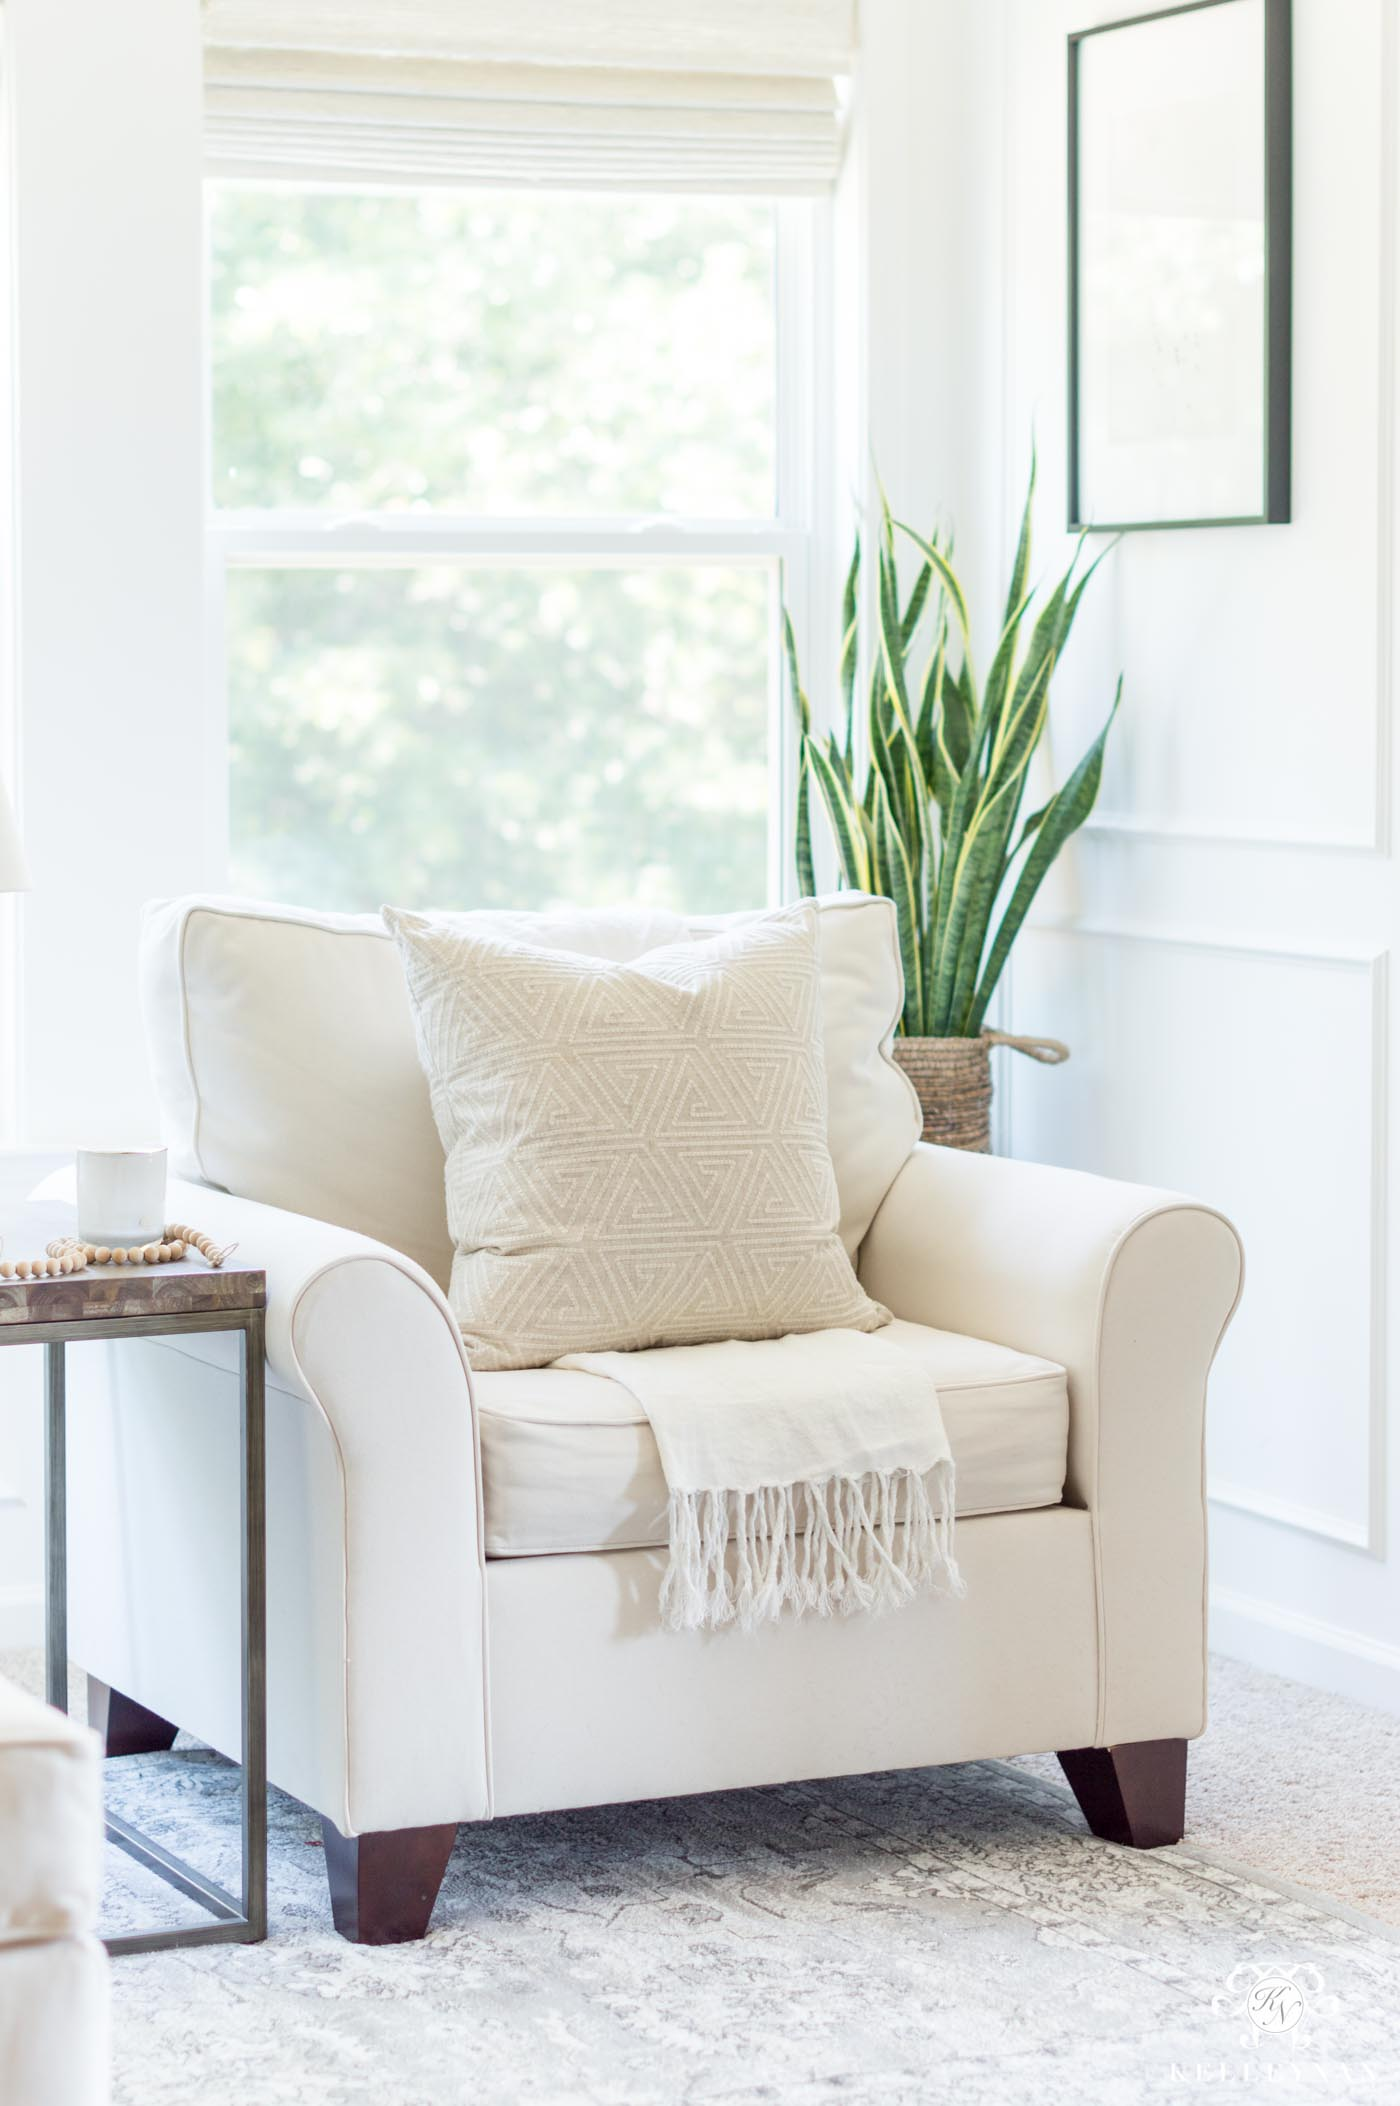 Master bedroom sitting area decor and chairs